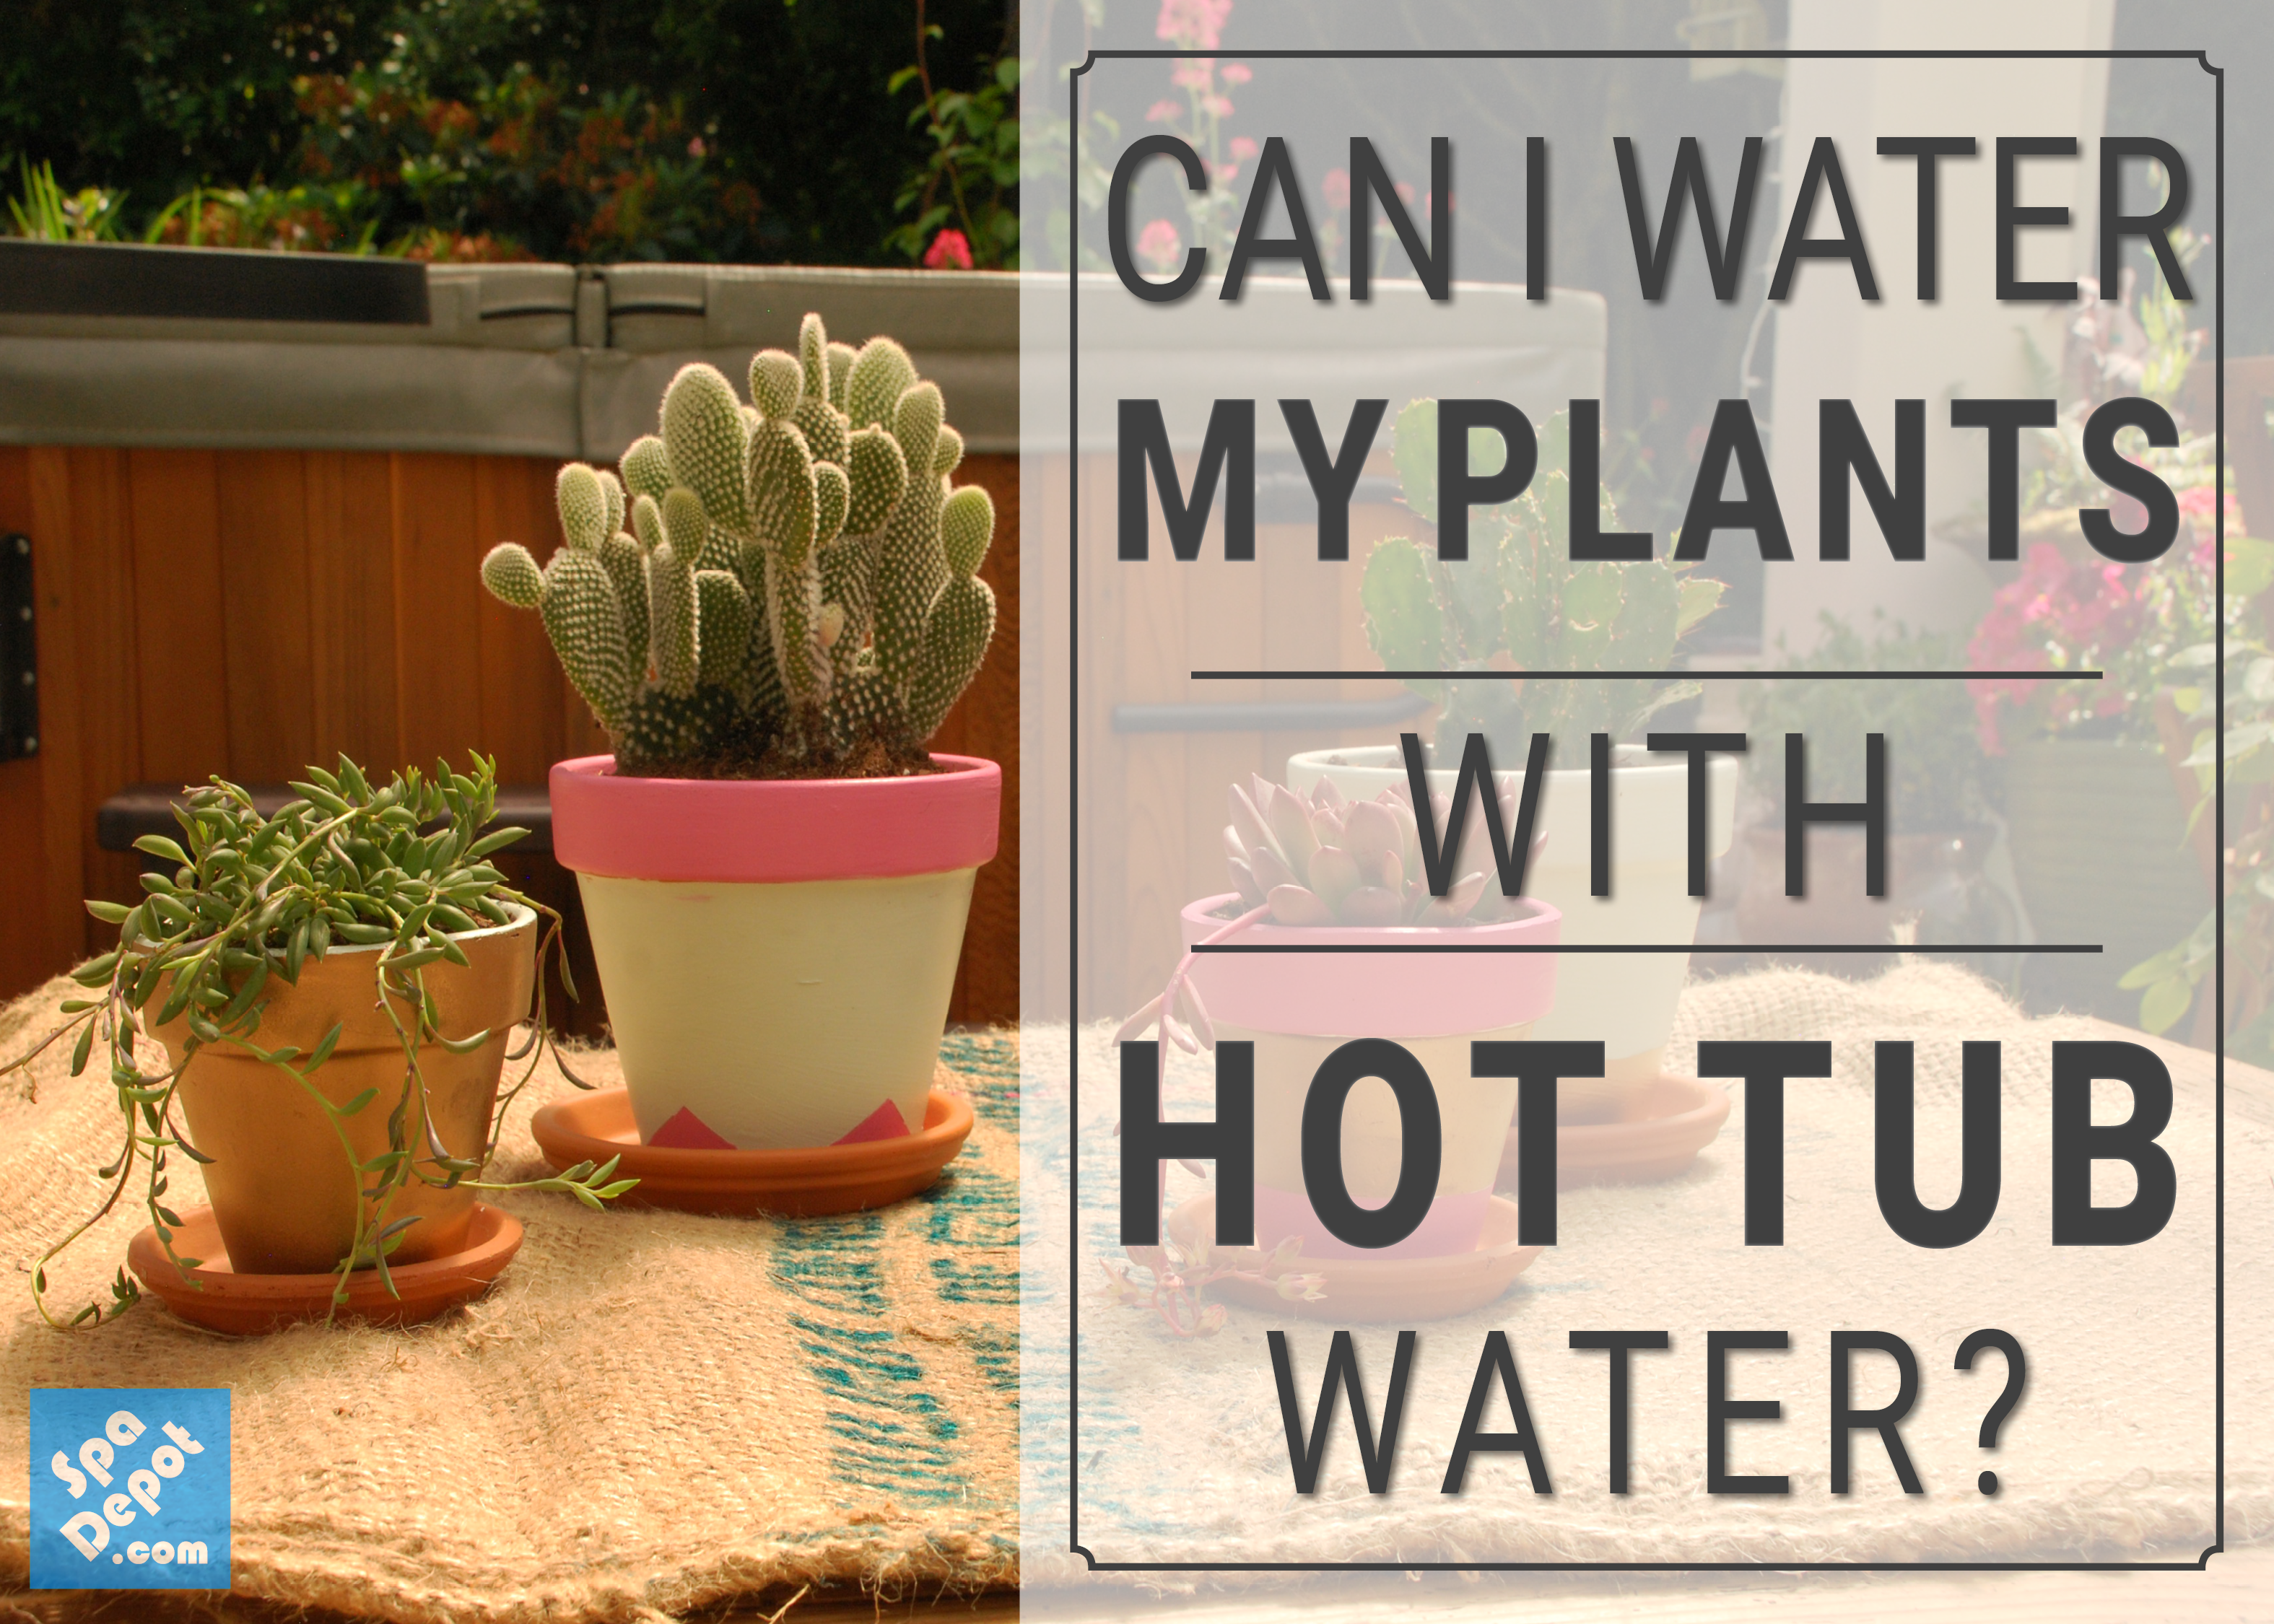 Can I water my plants with Hot Tub Water?